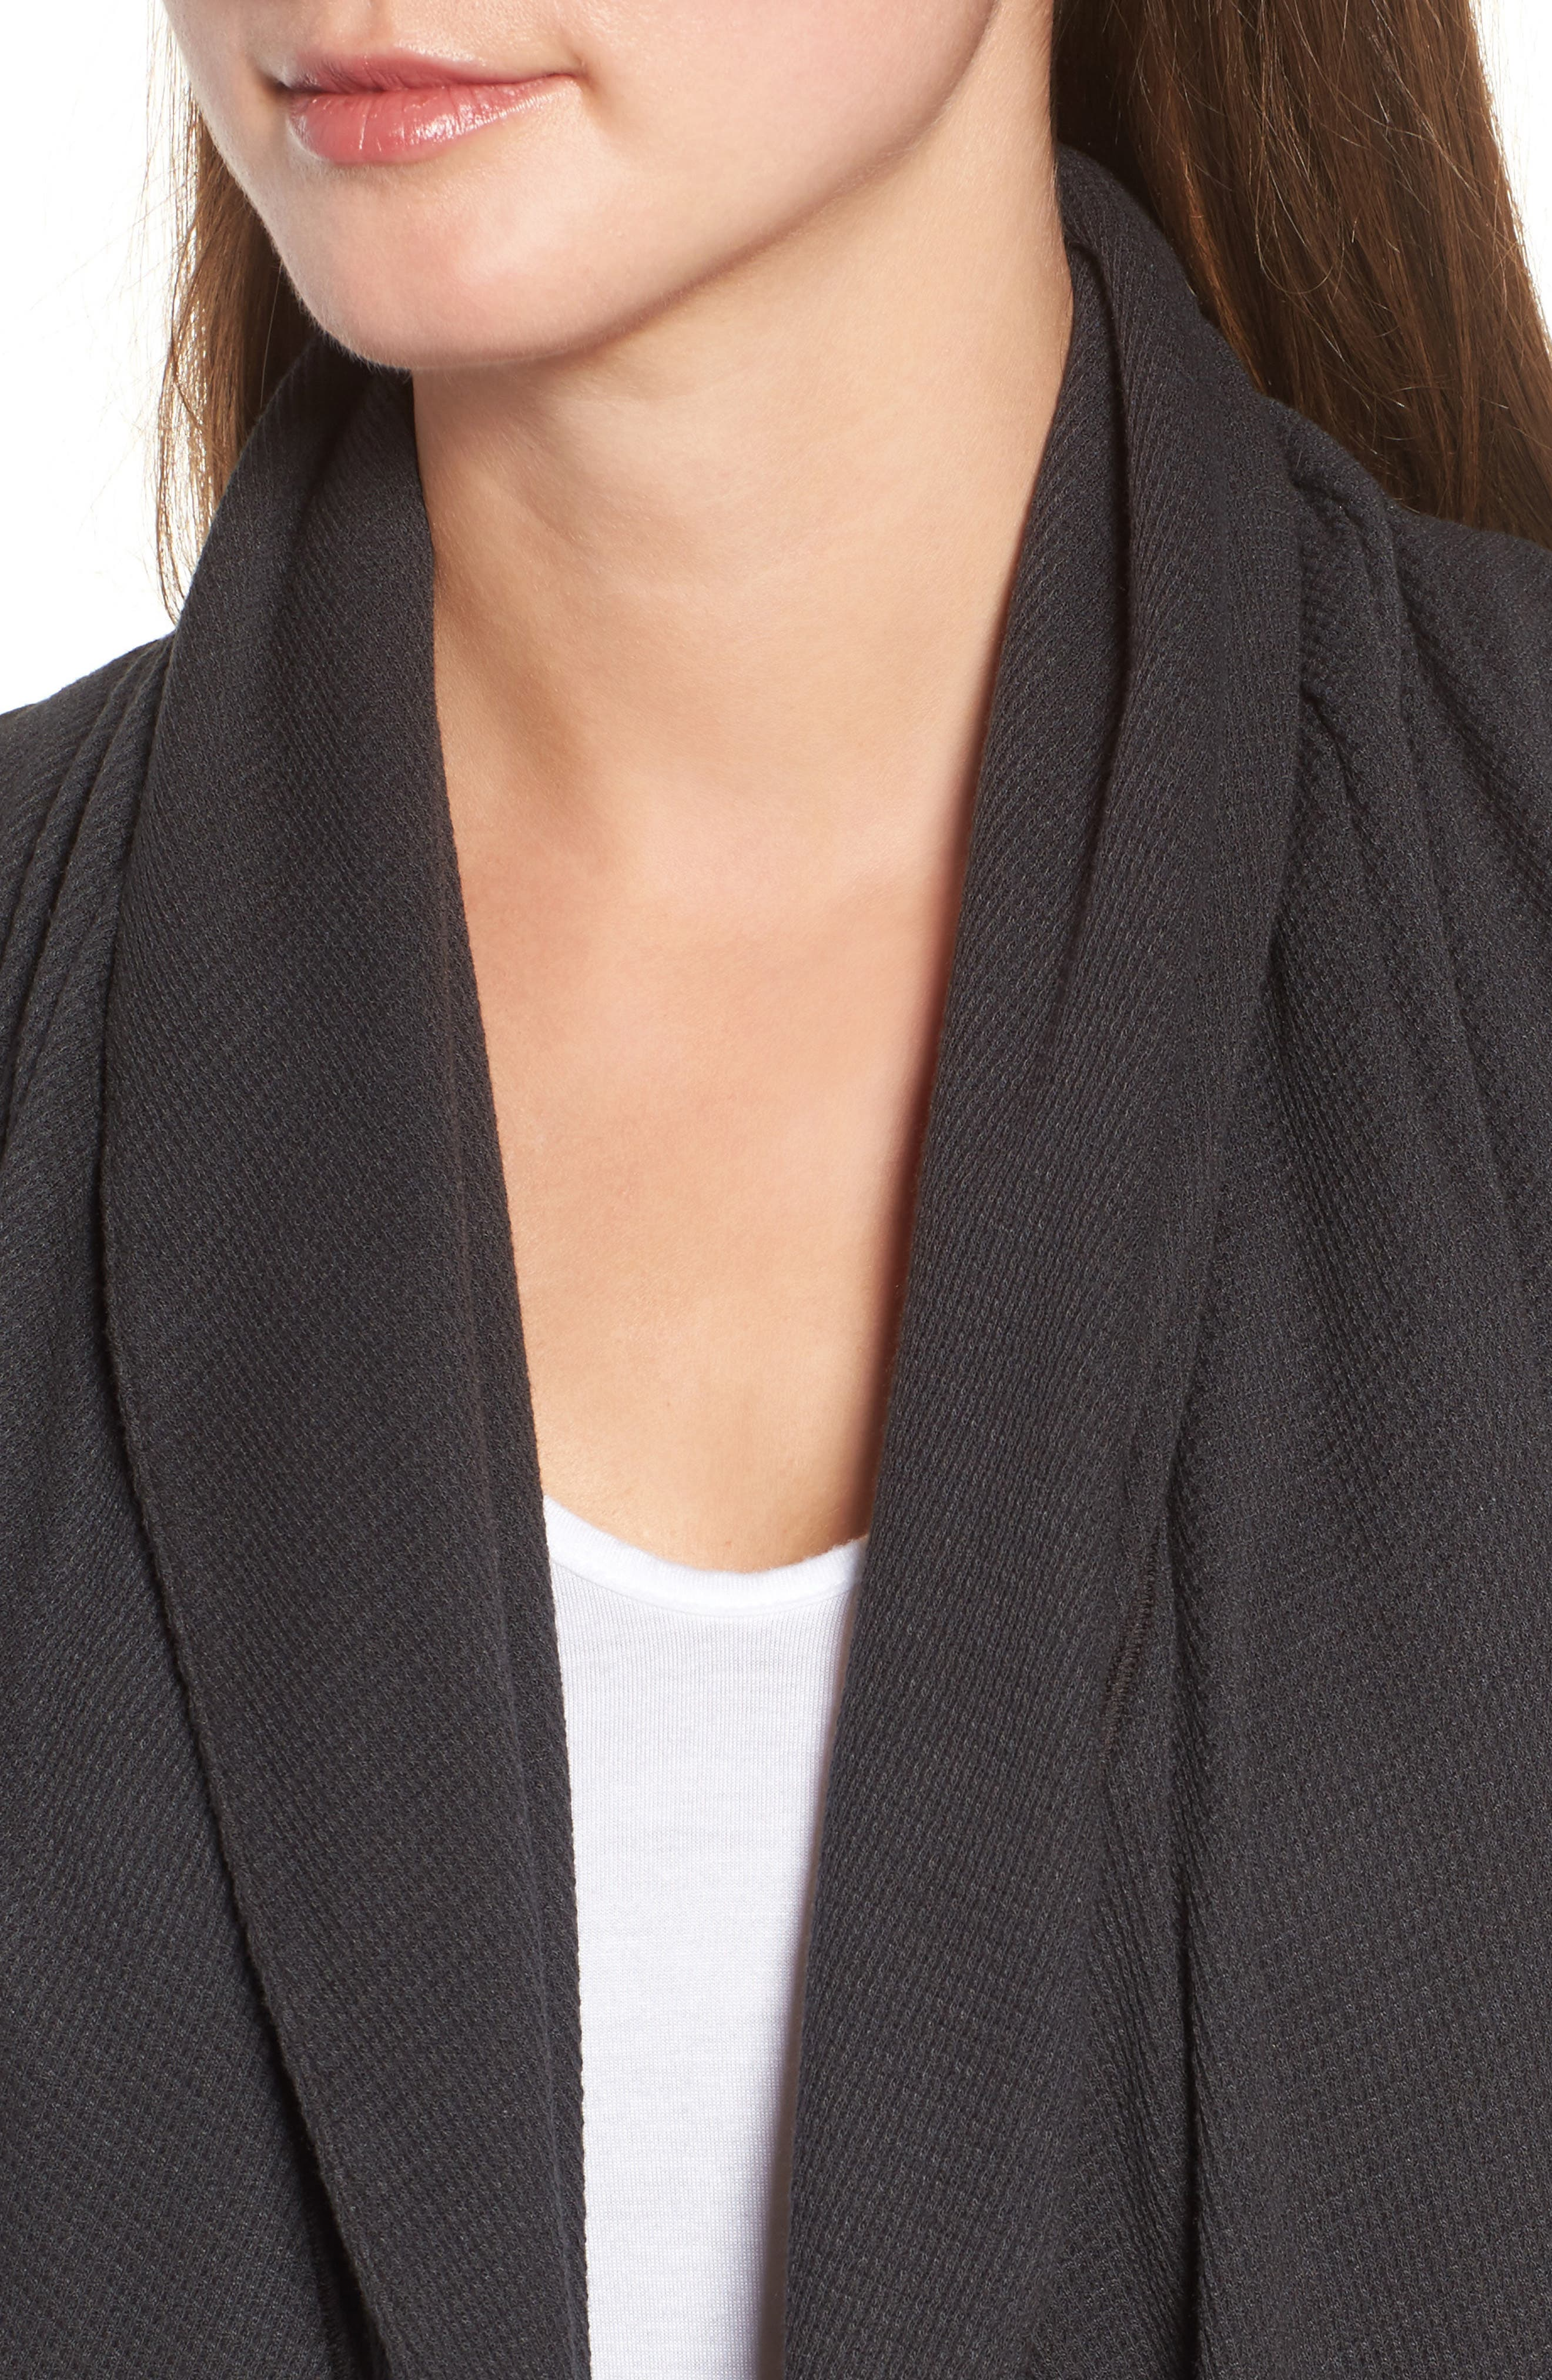 Baby Thermal Open Weave Cardigan,                             Alternate thumbnail 4, color,                             Ash Gray